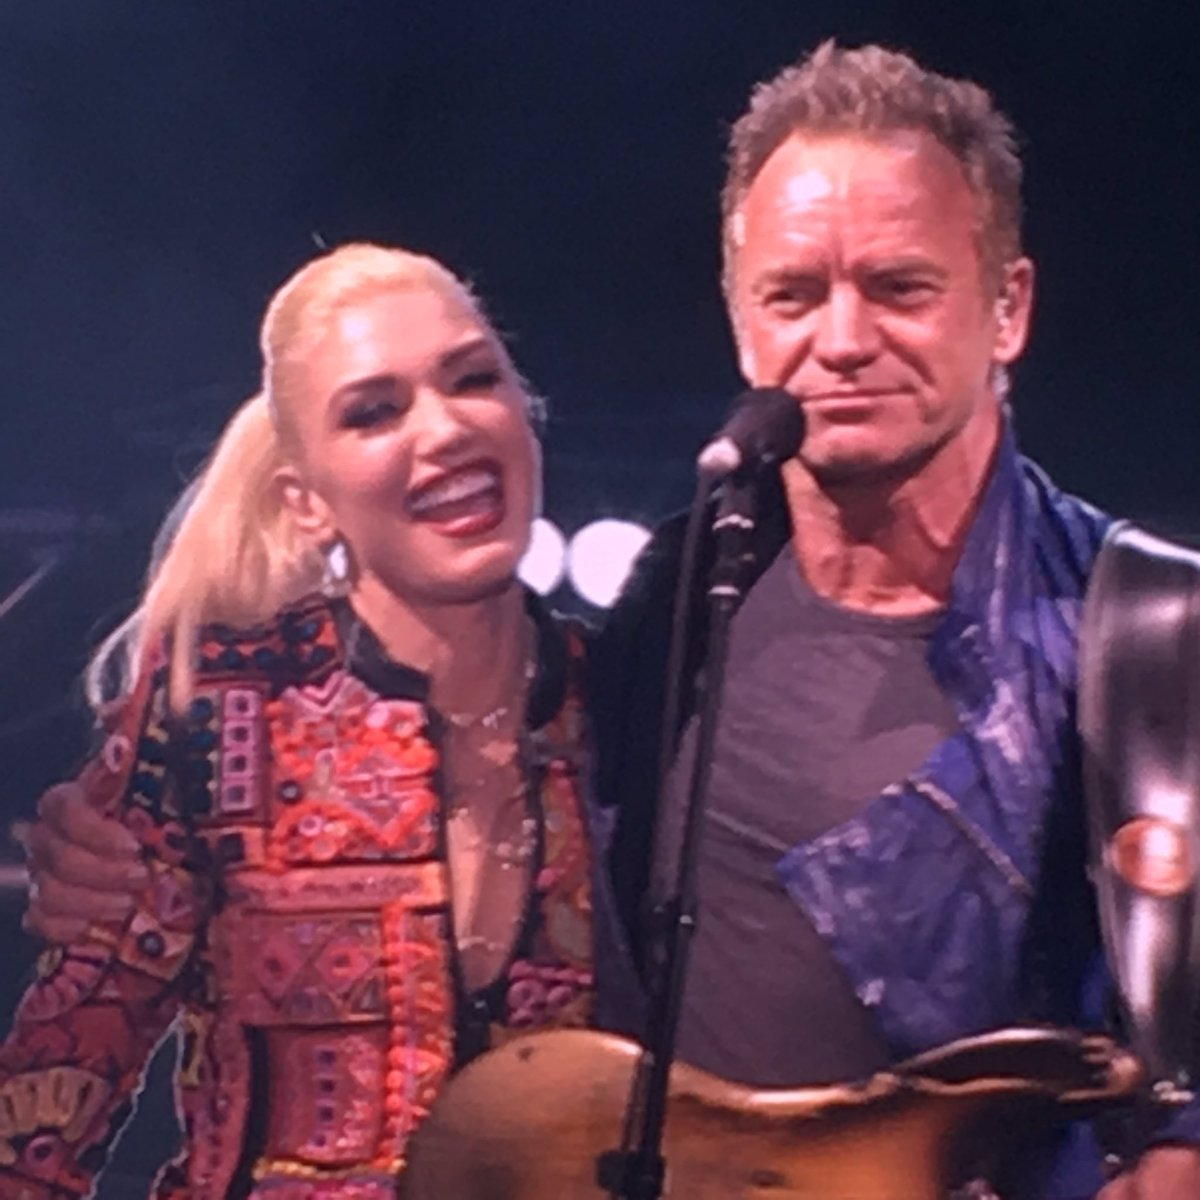 .@gwenstefani & @OfficialSting tore up Mssg in a Bottle tonight at #oow16 https://t.co/WusFkkLP9c